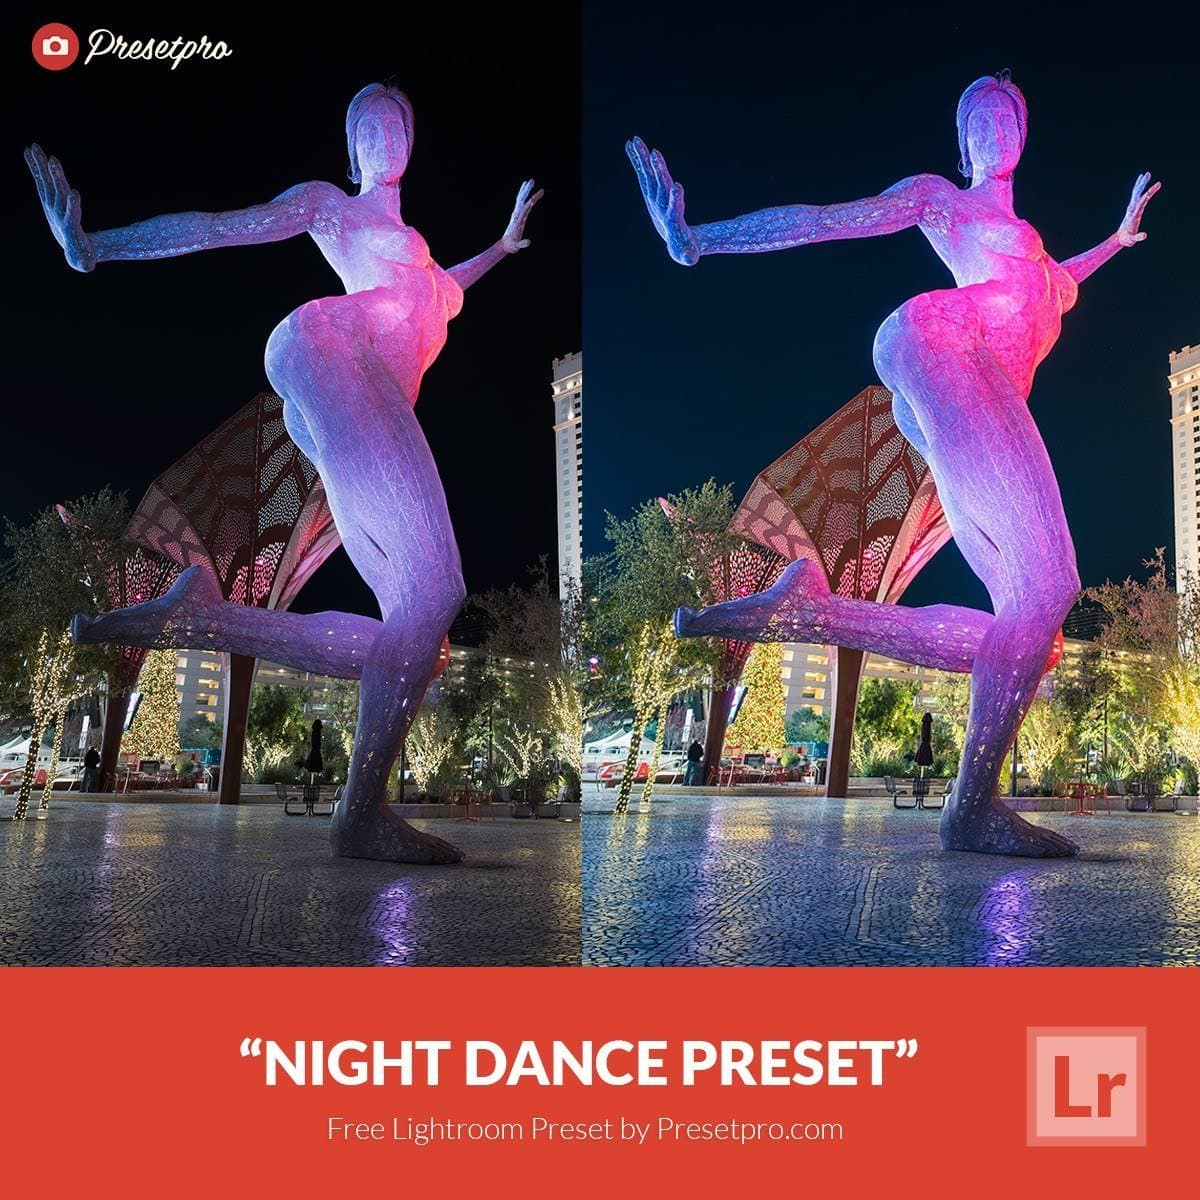 Free-Lightroom-Preset-Night-Dance